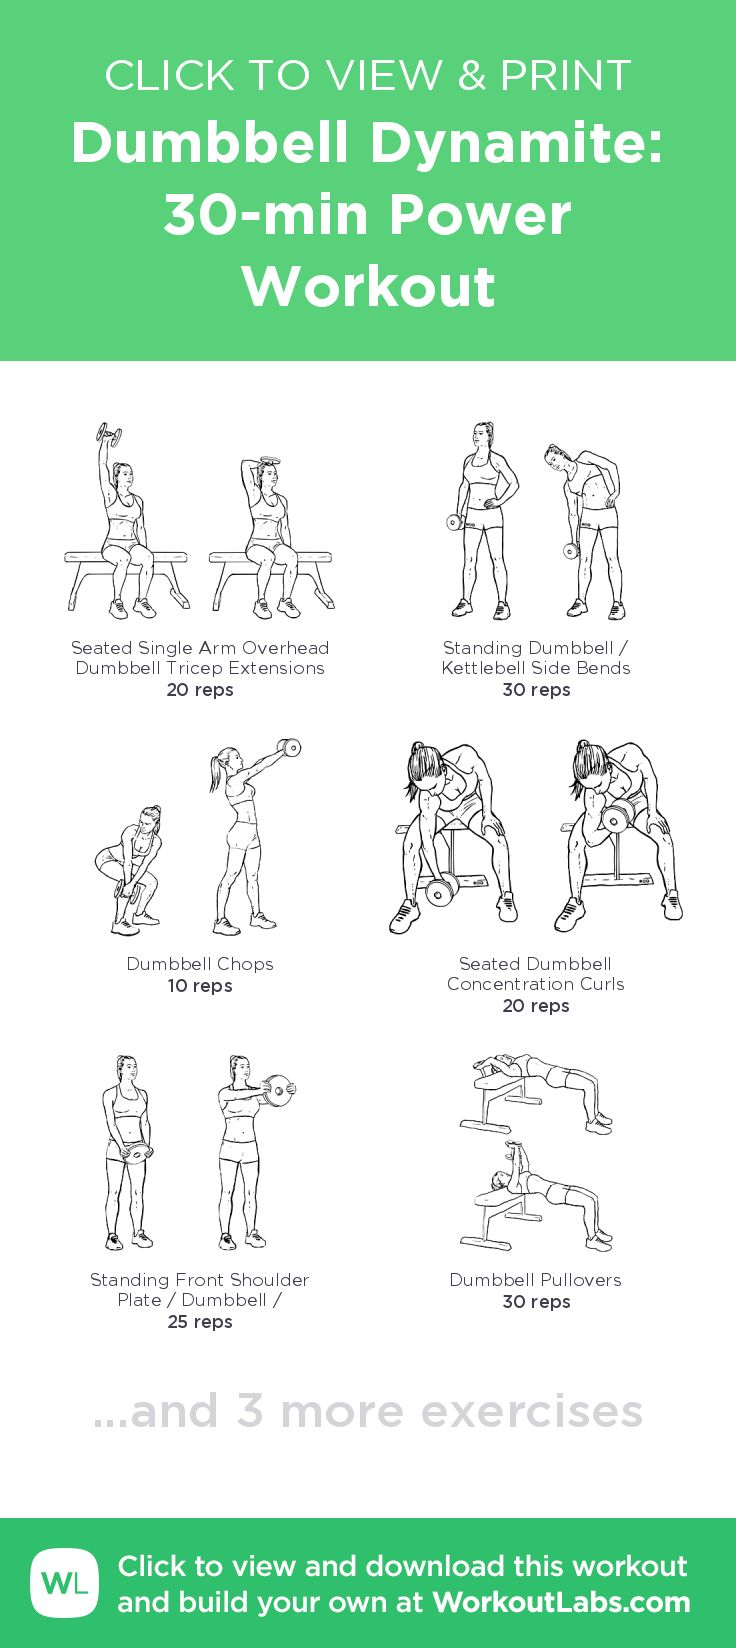 Dumbbell Dynamite: 30-min Power Workout – click to view and print this illustrated exercise plan created with #WorkoutLabsFit